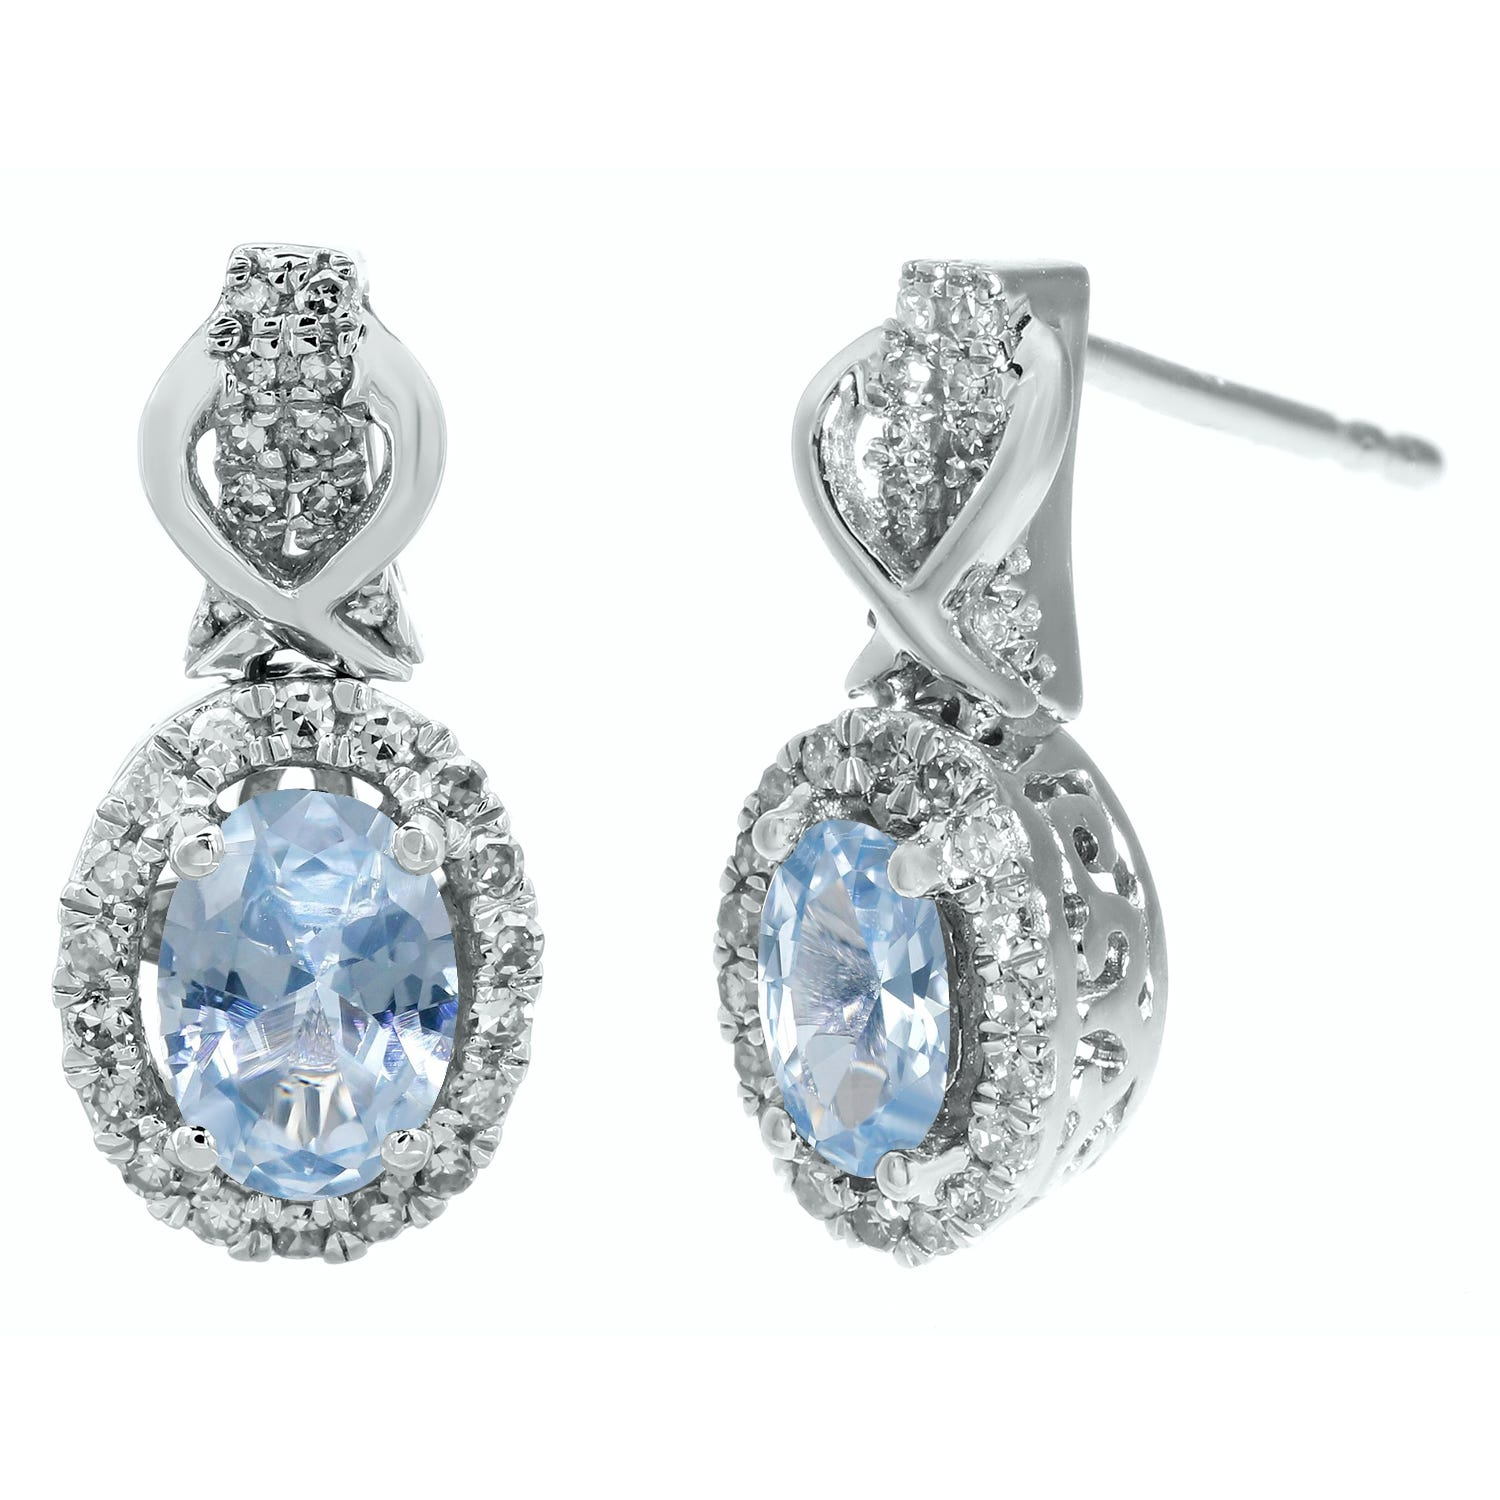 Oval Aquamarine Gemstone & Round Diamond Drop Earrings in 10k White Gold